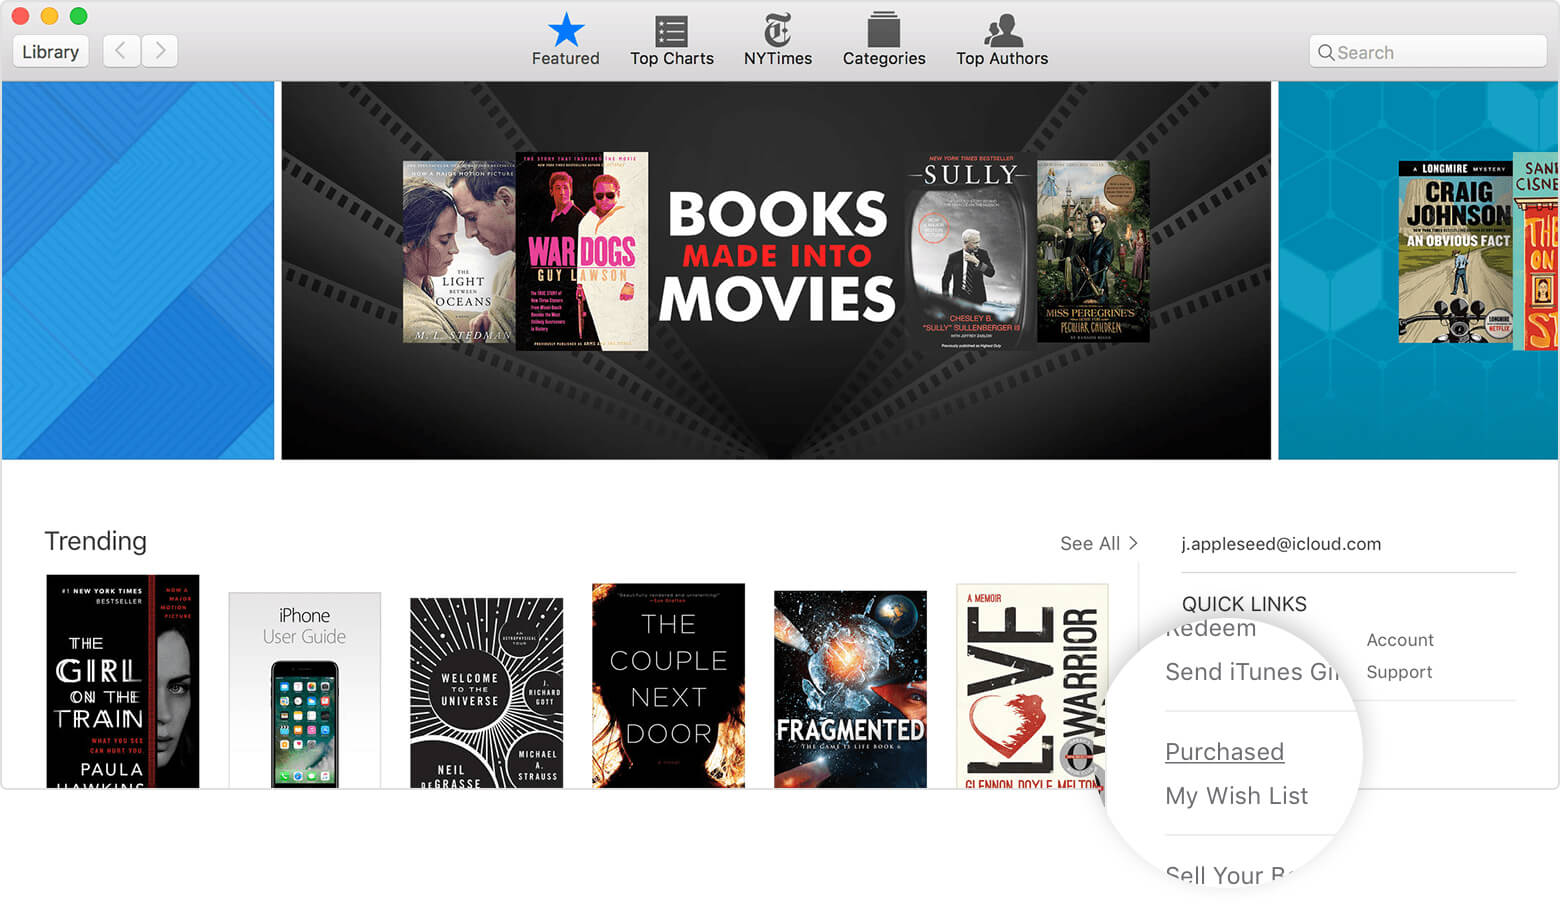 ibooks purchased